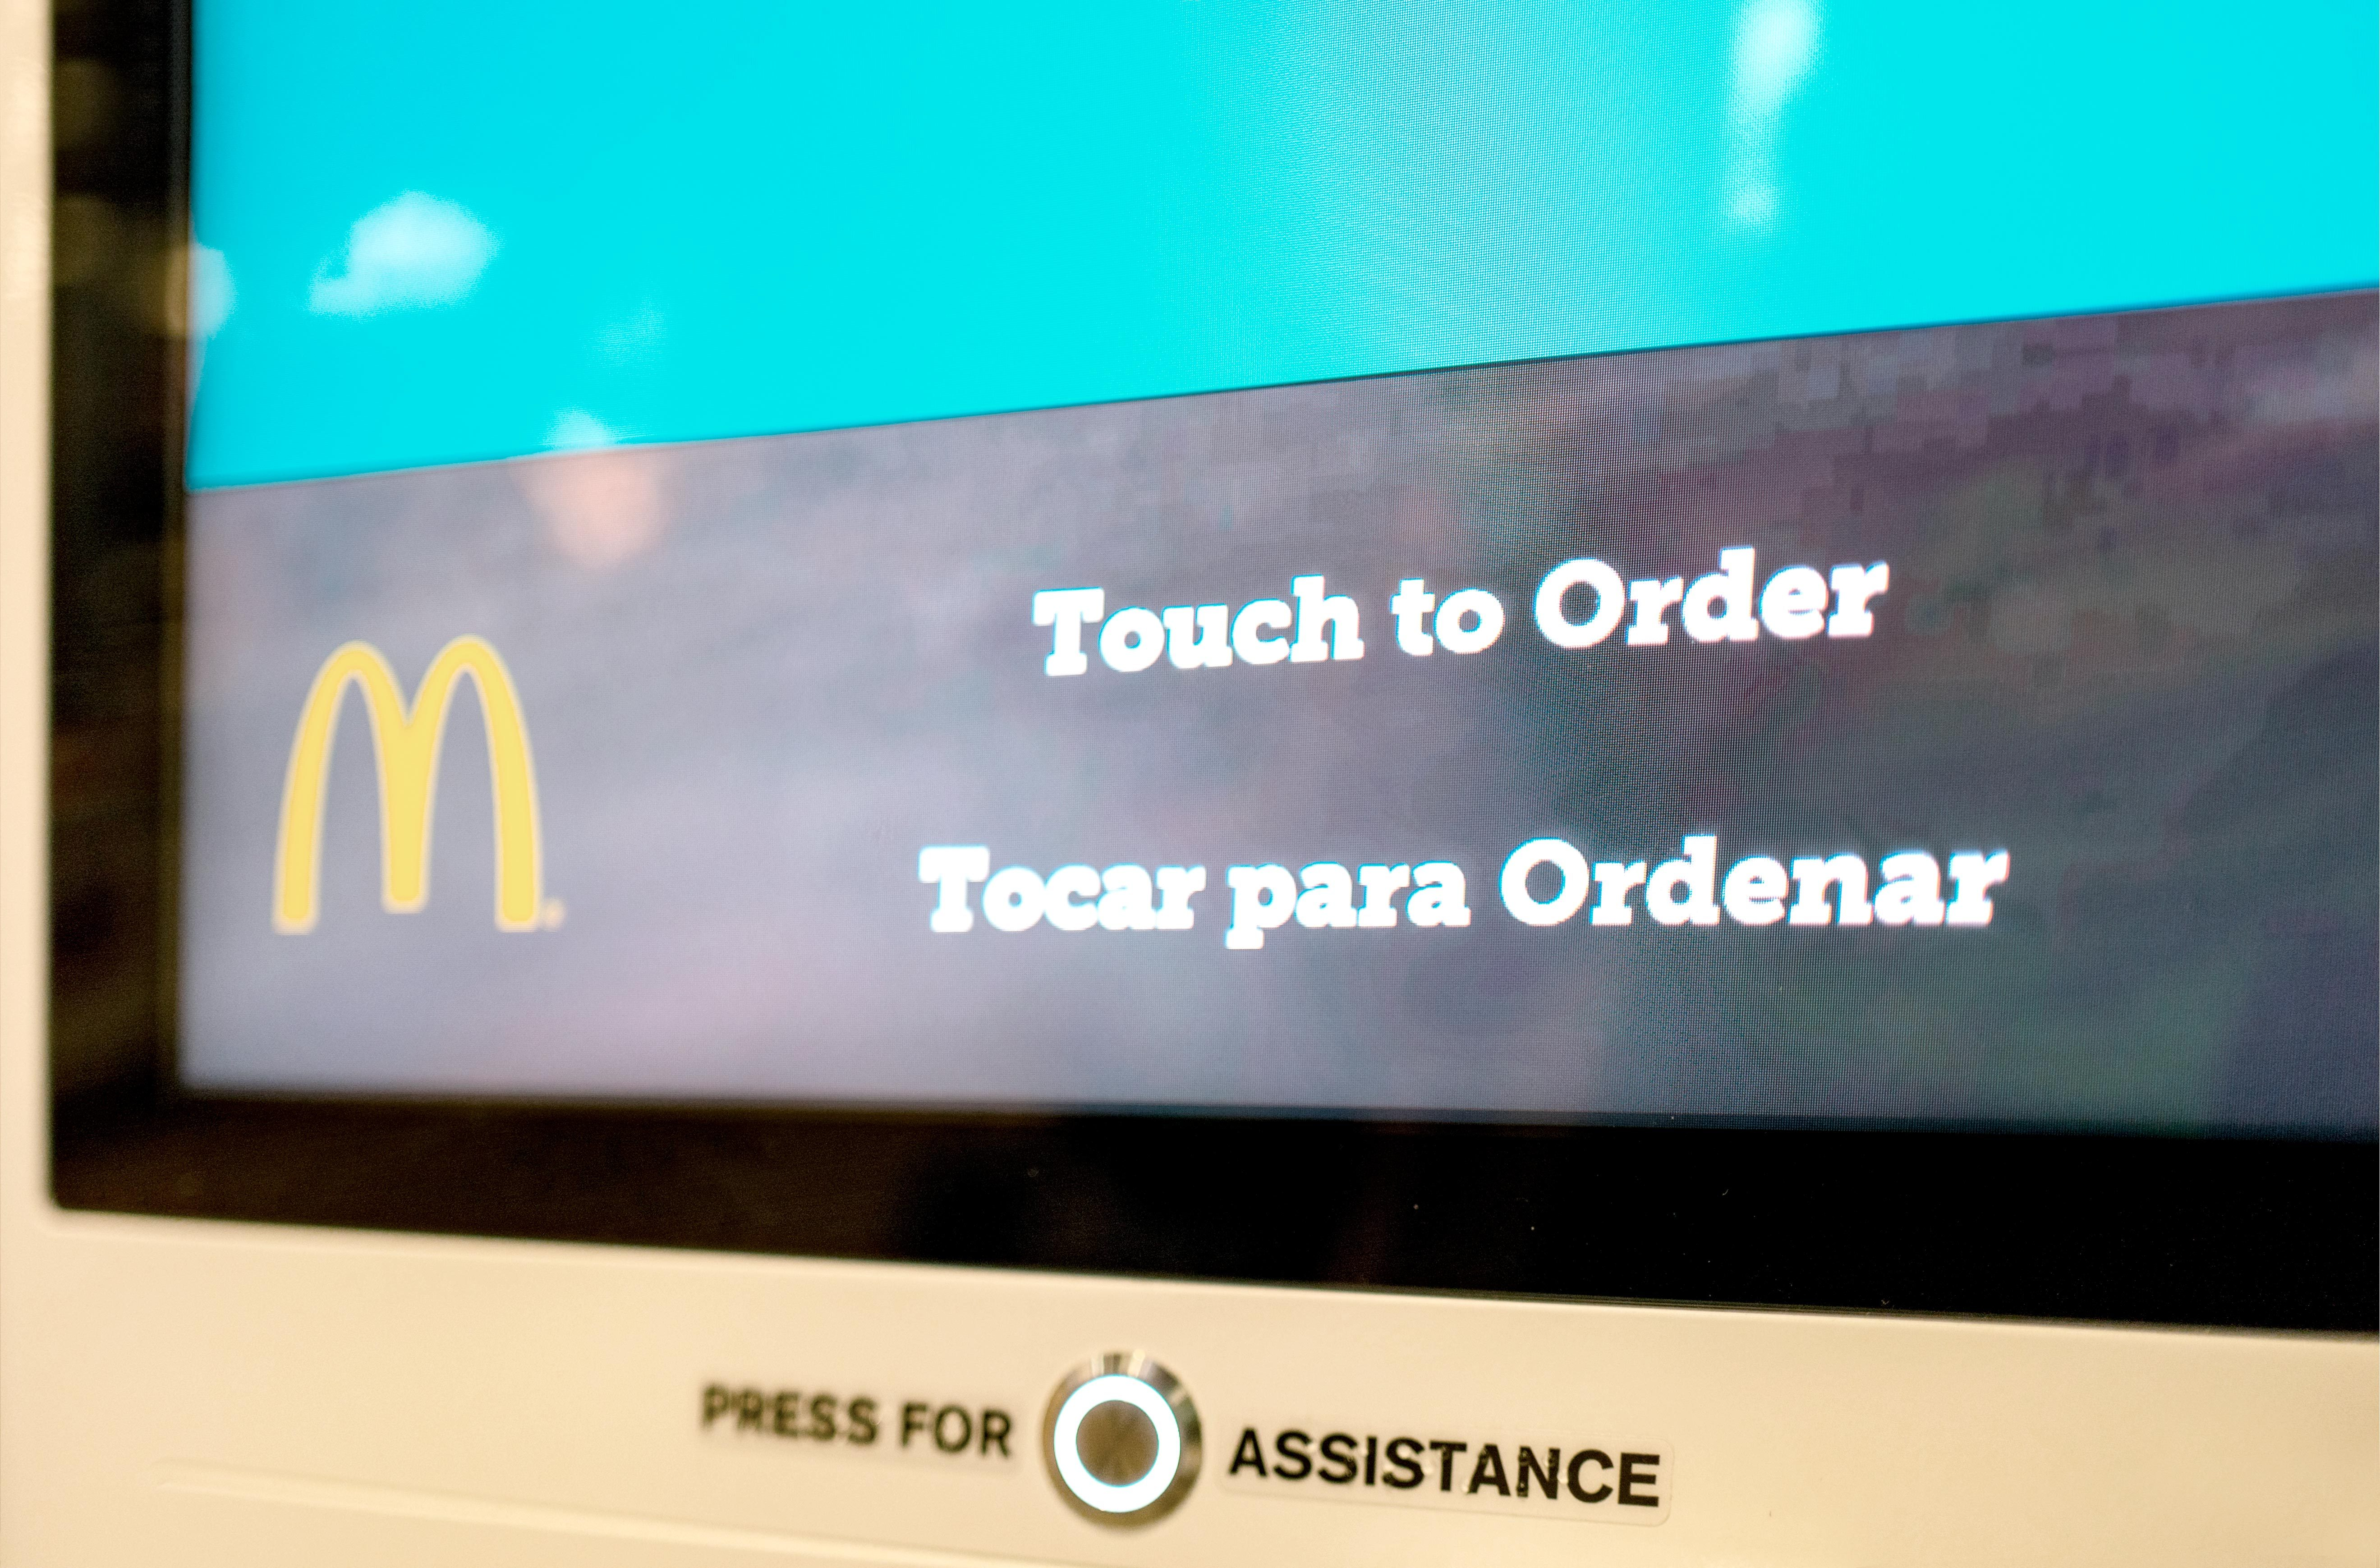 Mcdonald's Automated Ordering